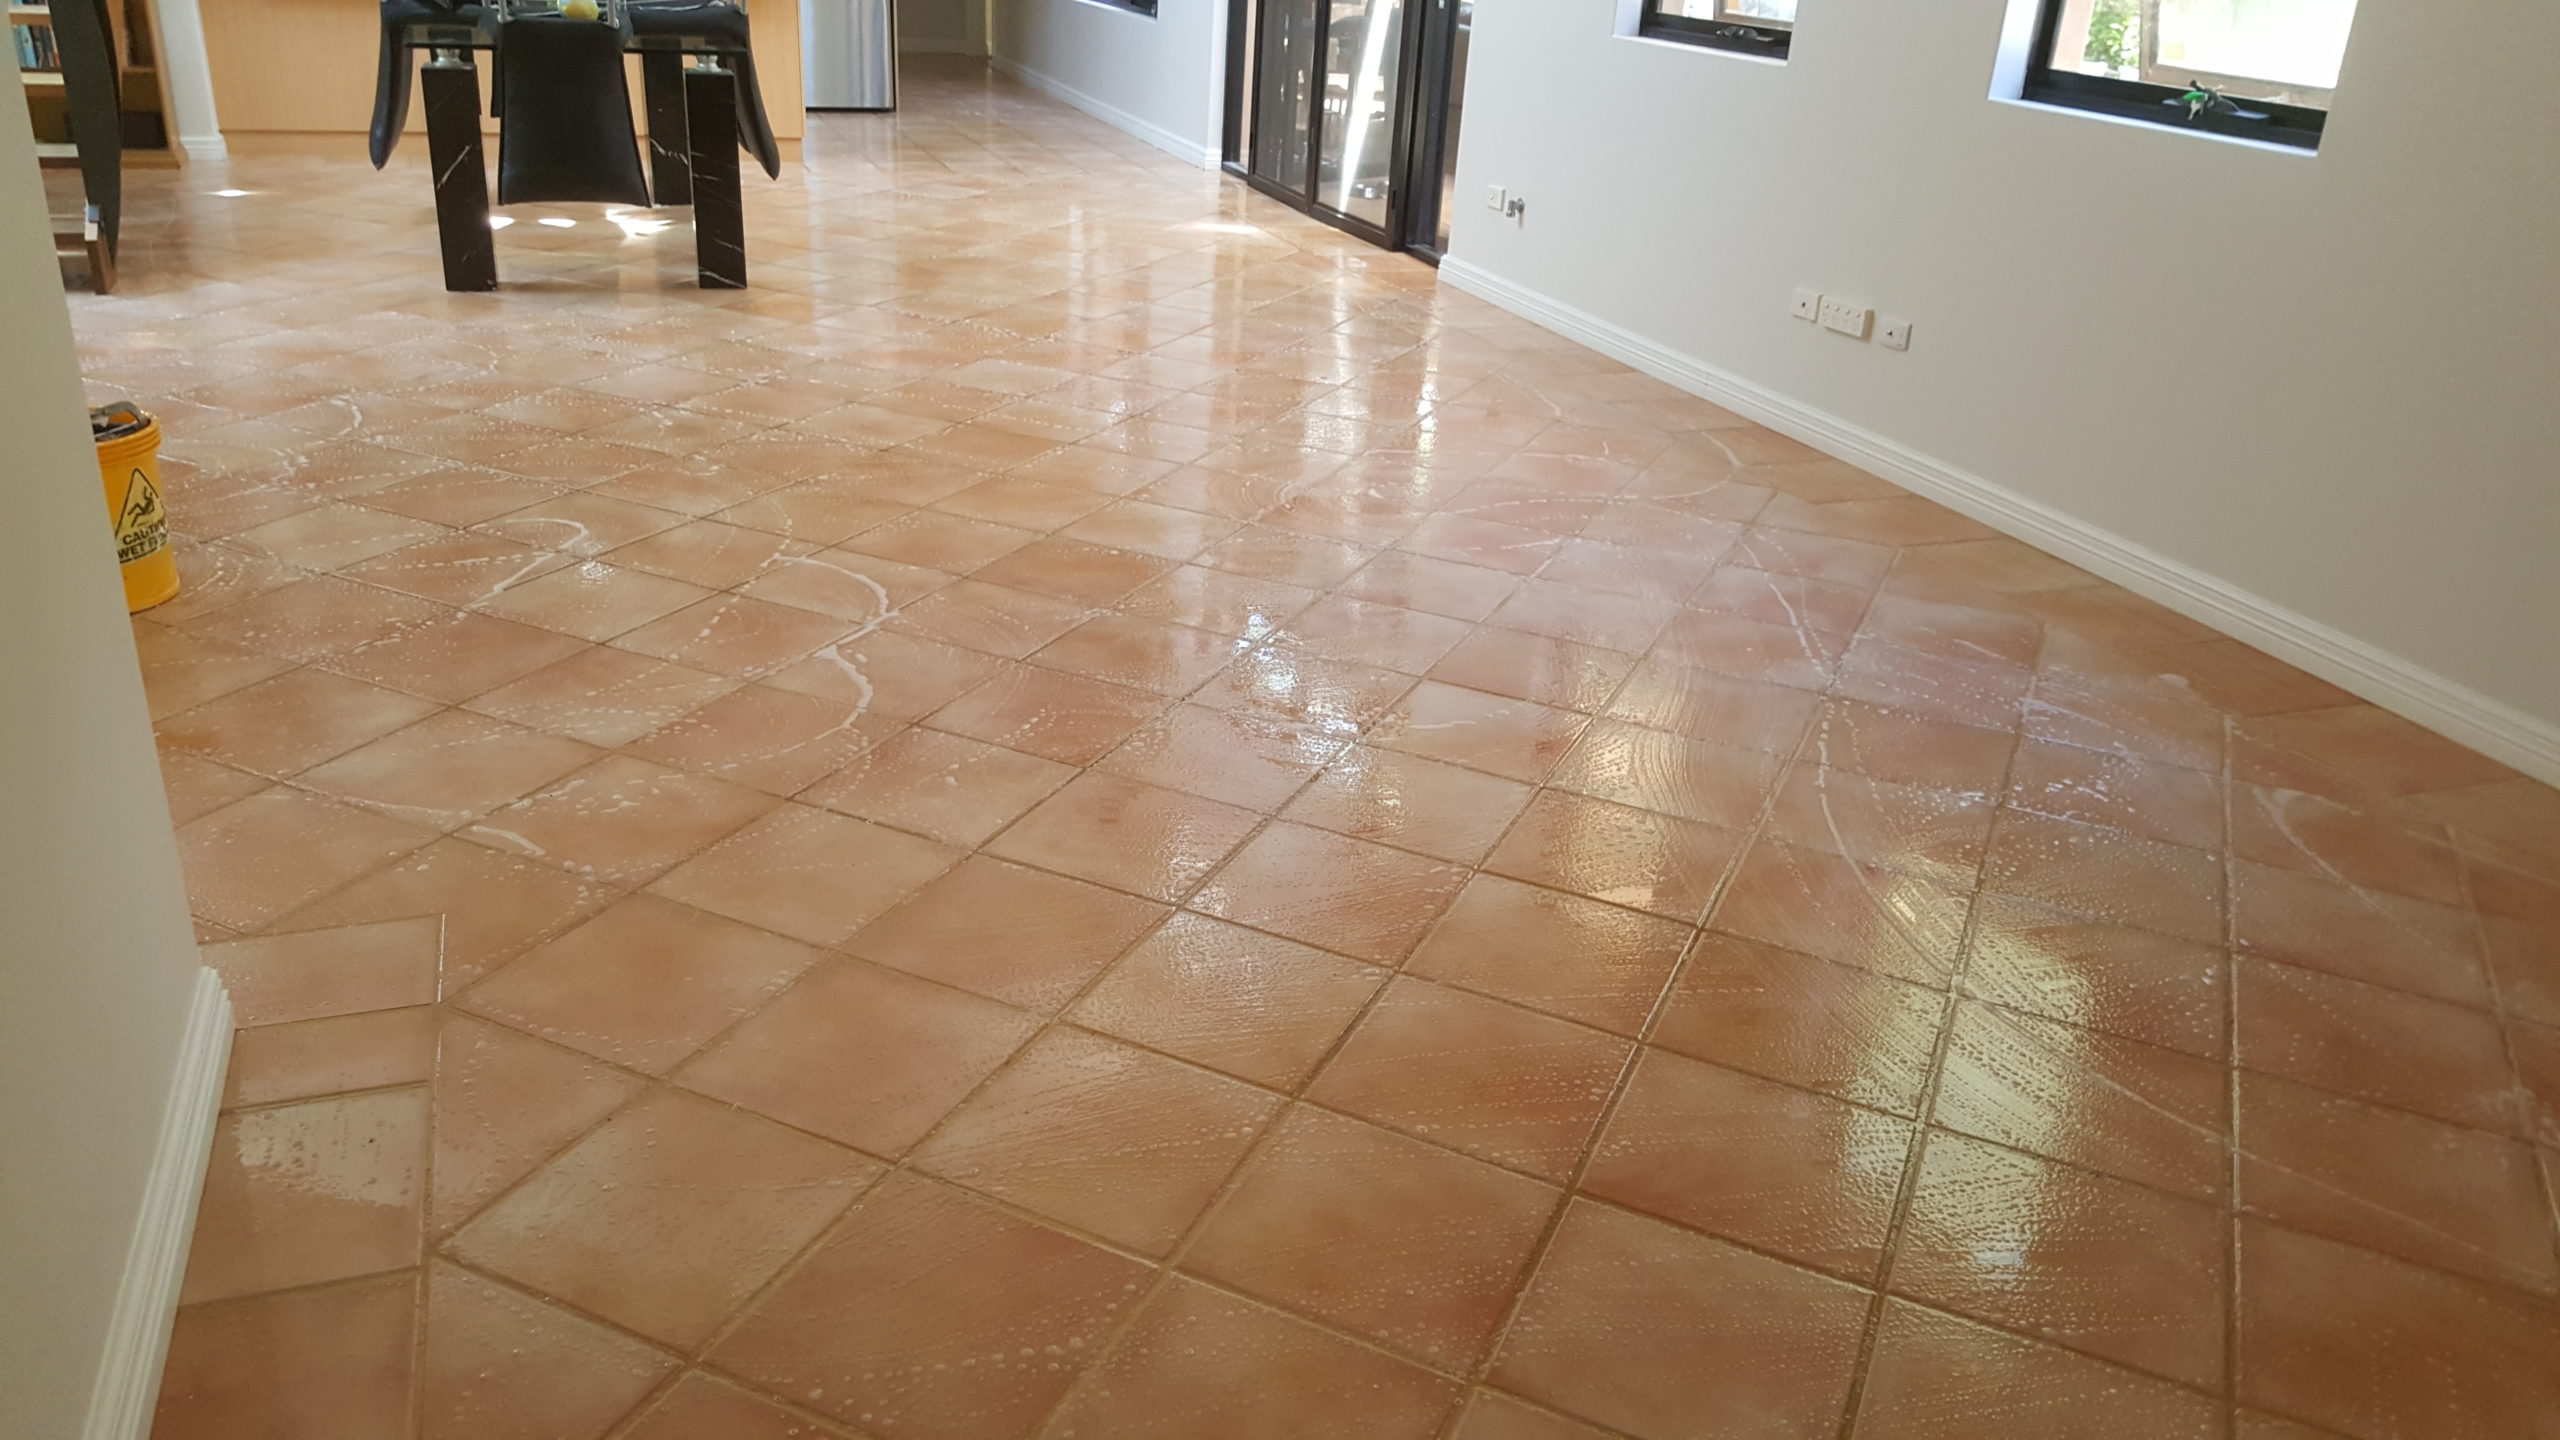 Terracotta Tile Grout Clean Seal Infinity Flooring 20161026 105550 Scaled